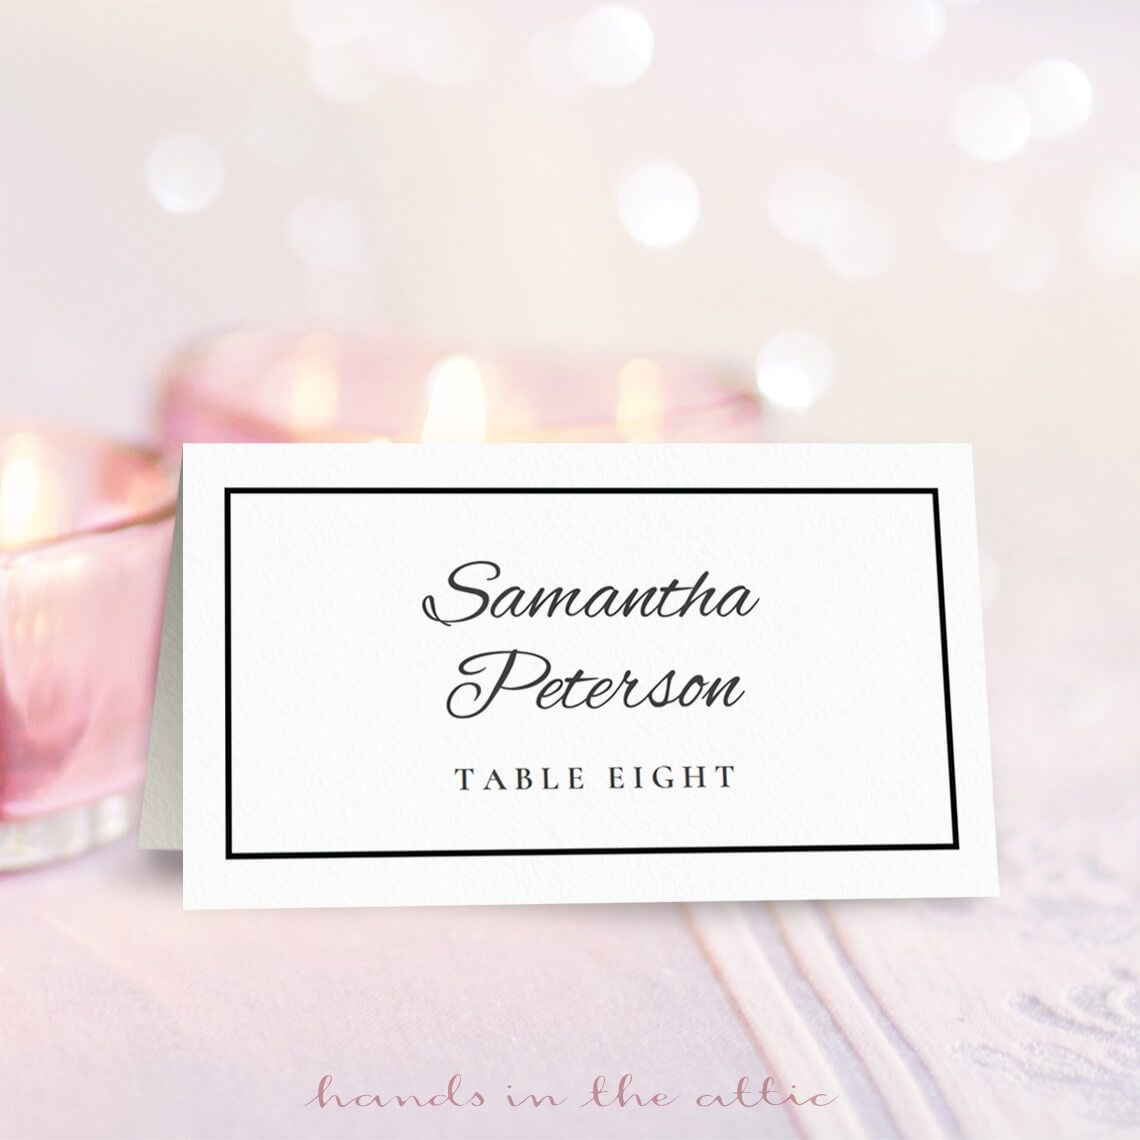 Wedding Place Card Template | Free On Handsintheattic | Free - Free Printable Place Cards Template